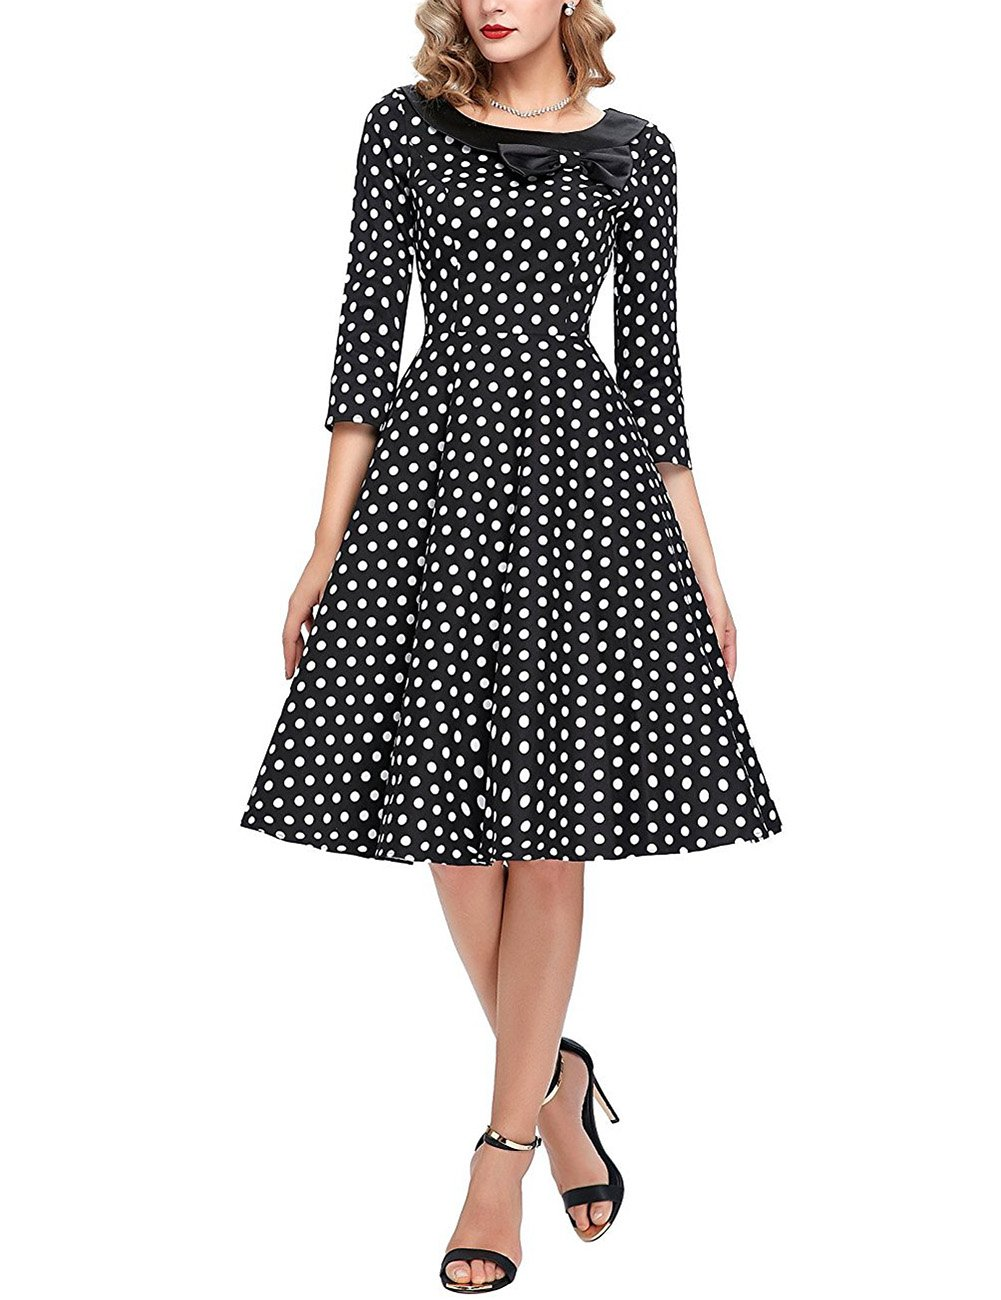 GlorySunshine Women's Vintage Swing Polka Dot Dress 6